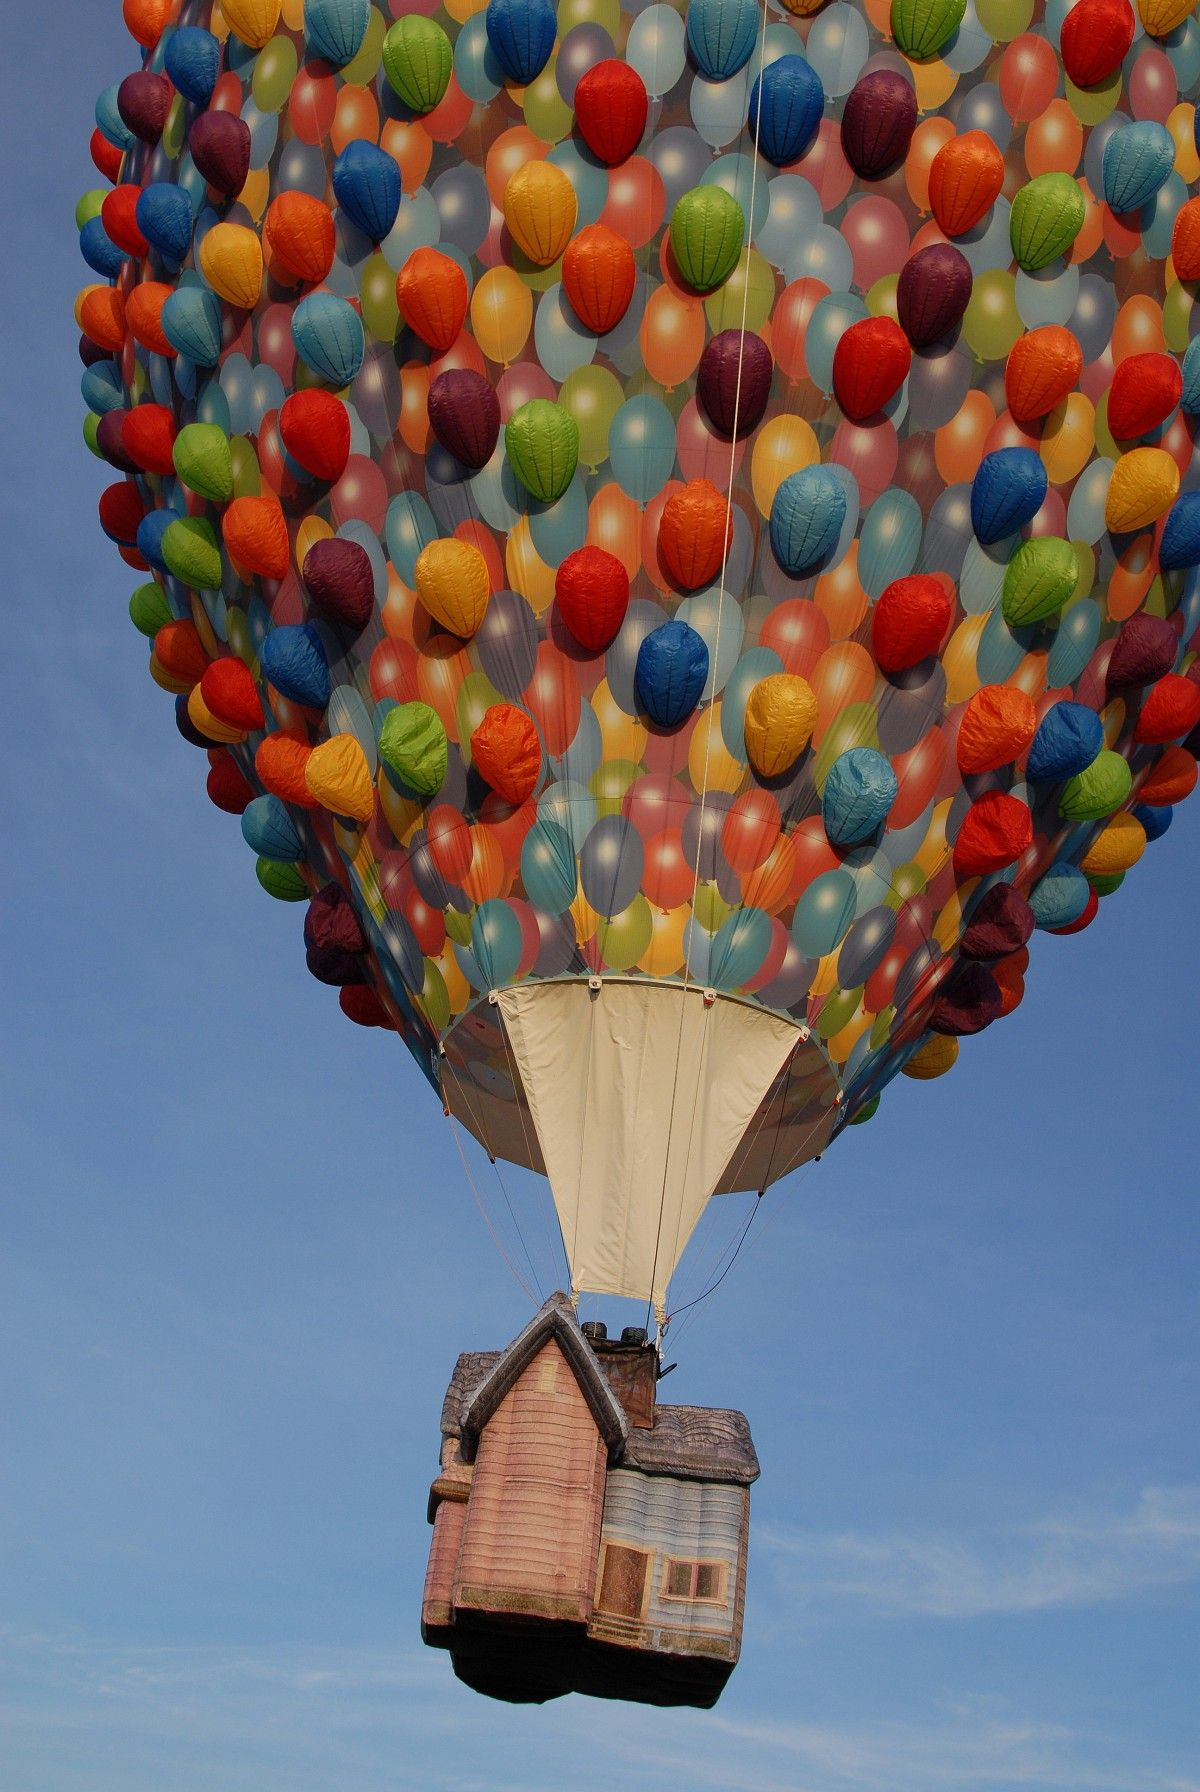 Free Images wing, light, sky, hot air balloon, travel